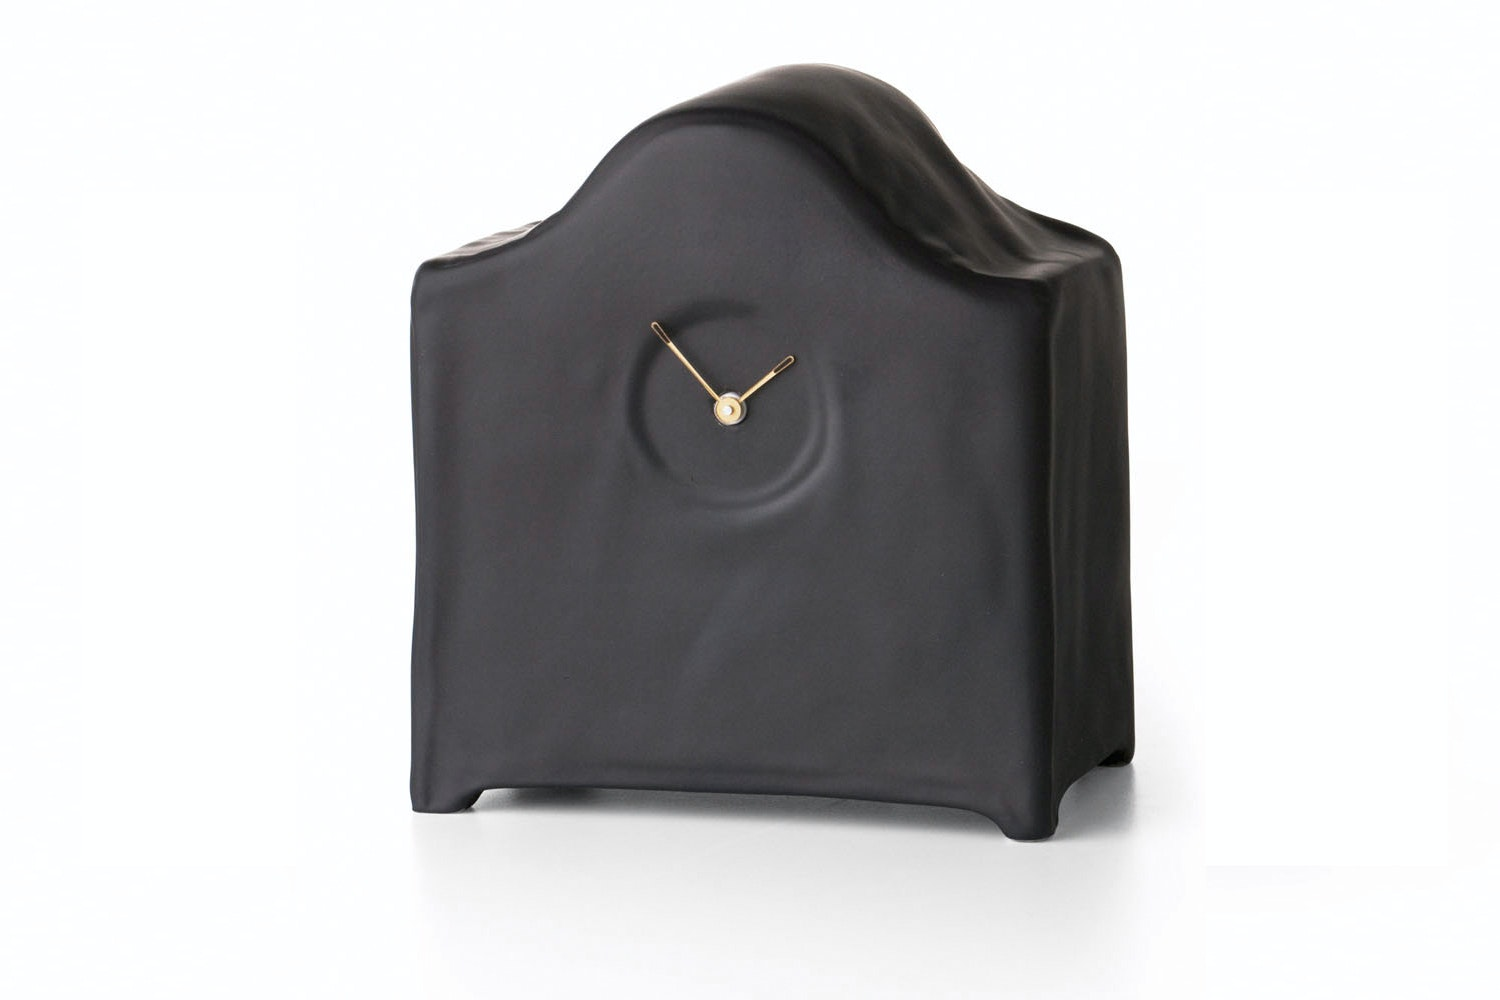 Soft Clock Black by Kiki van Eijk for Moooi